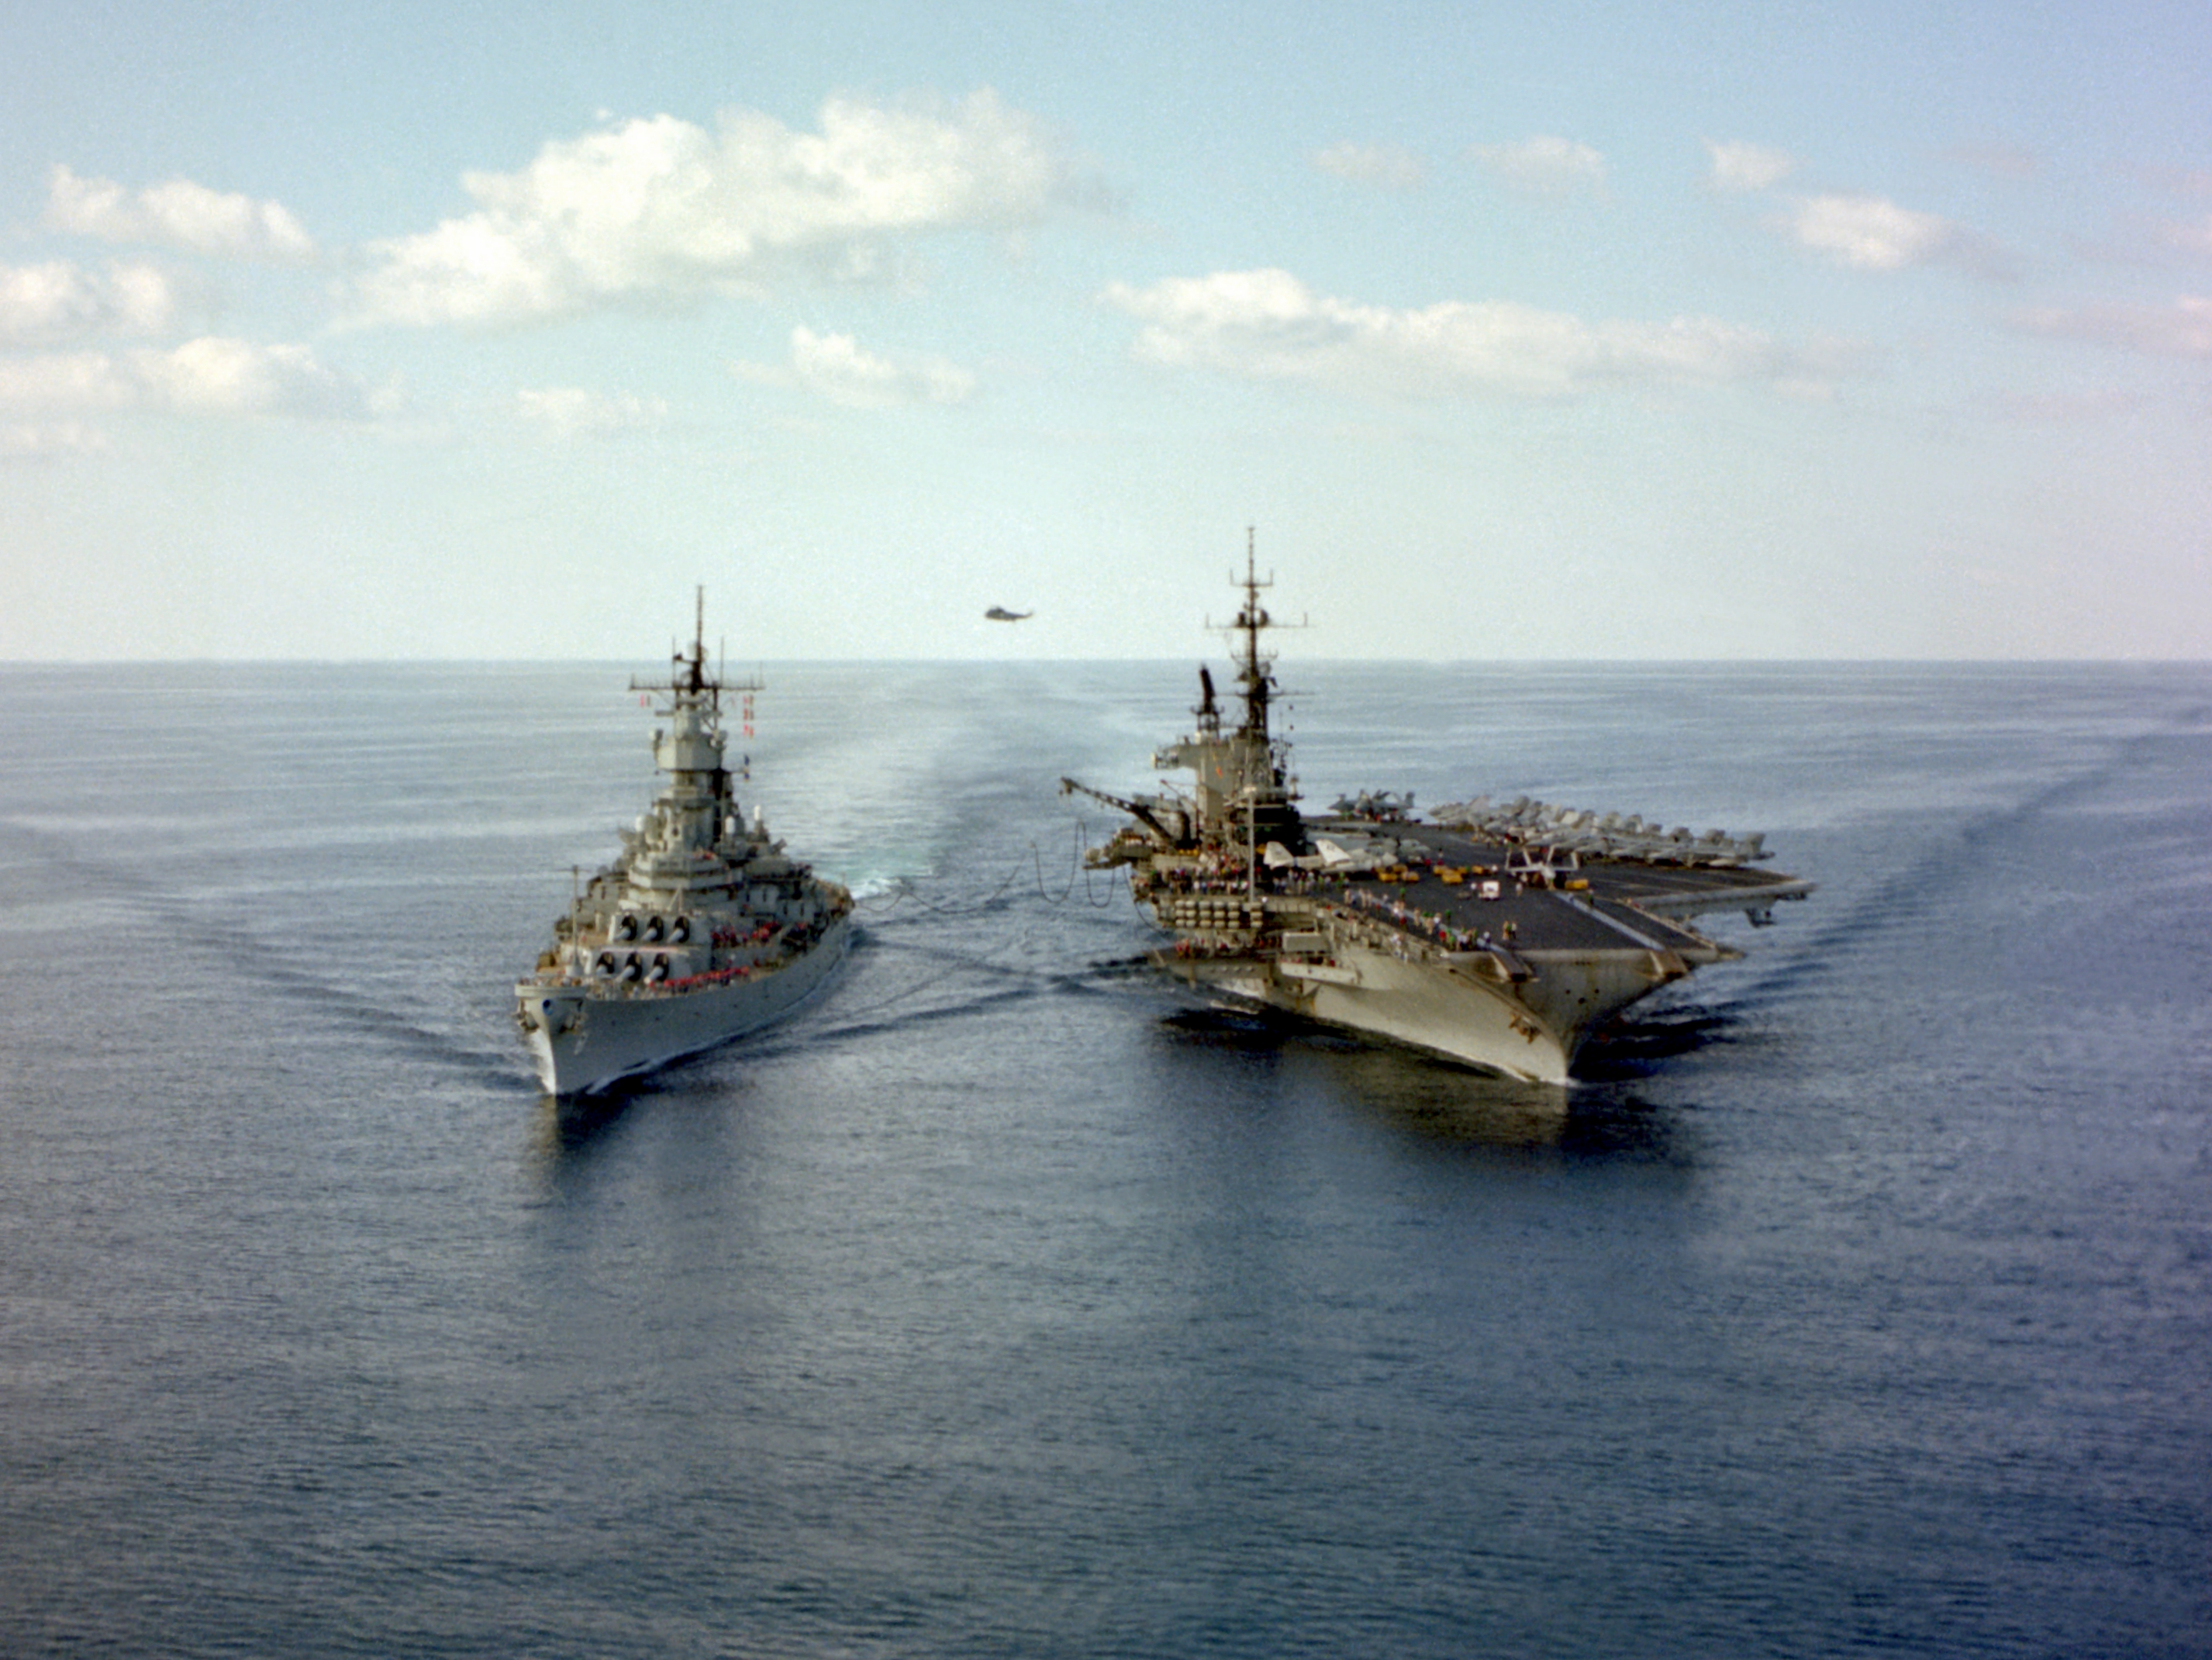 File Uss Iowa Bb 61 Alongside Uss Midway Cv 41 In 1987 Jpeg Wikimedia Commons